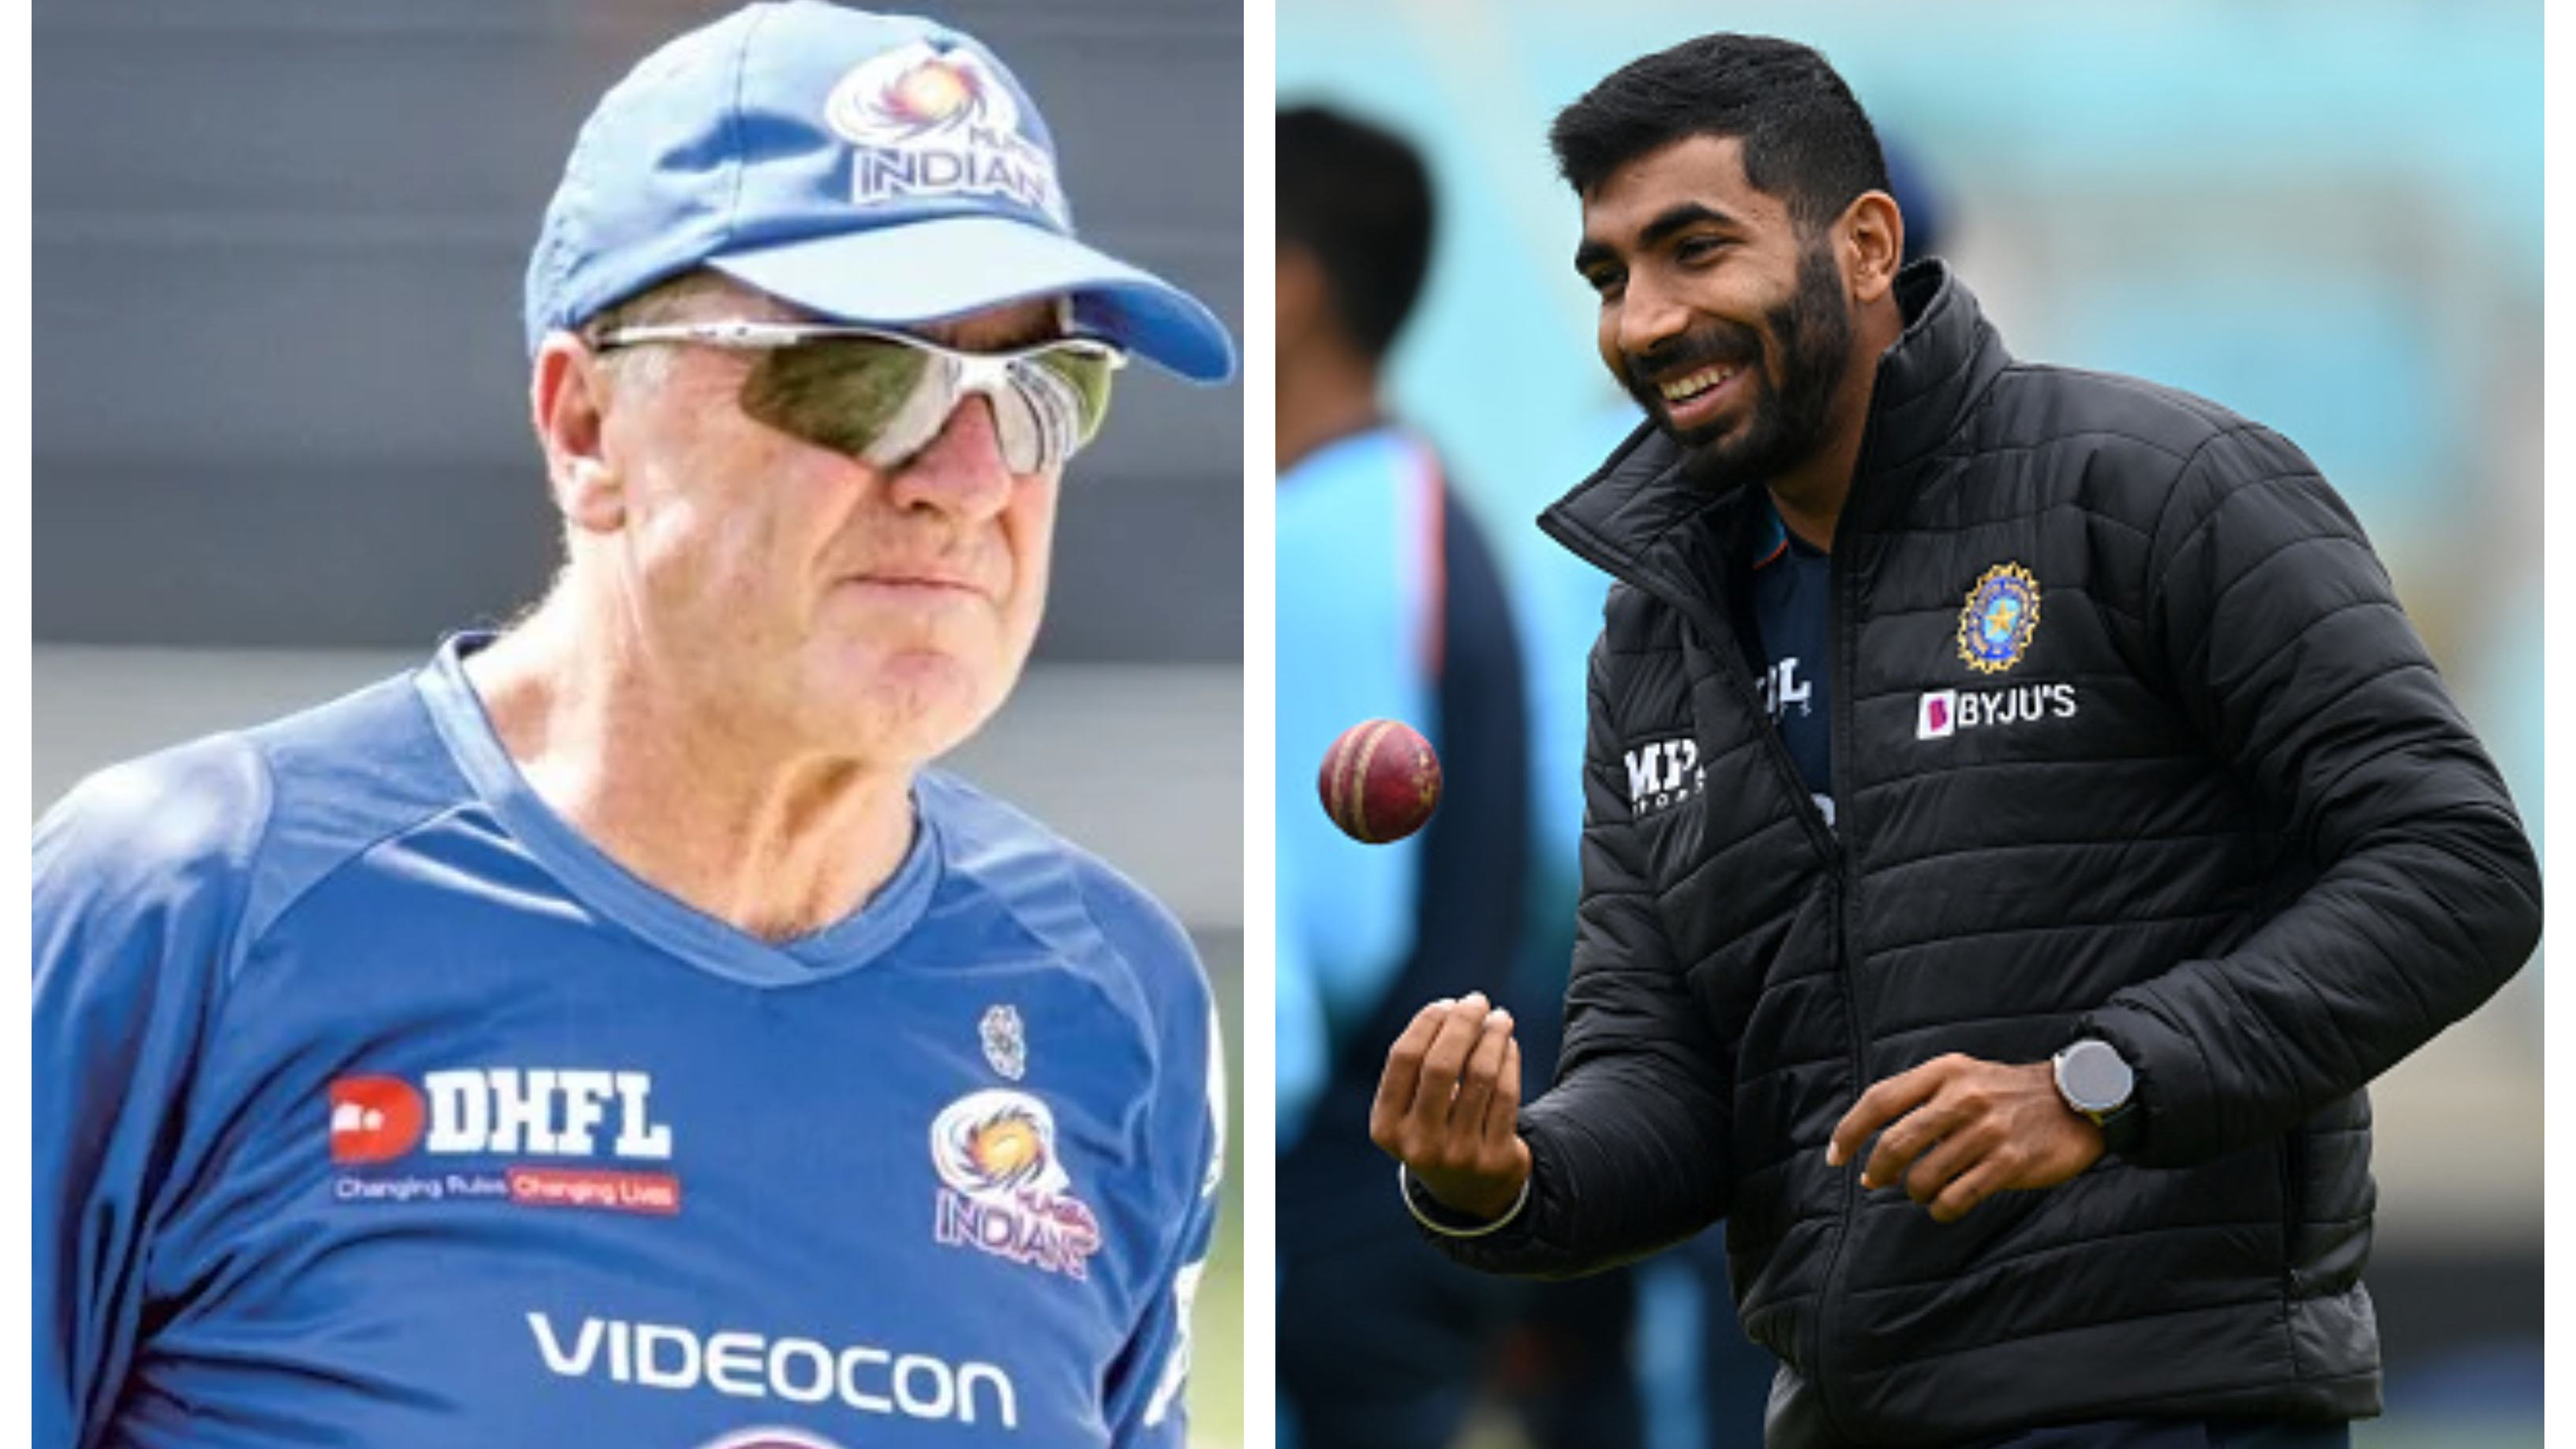 Jasprit Bumrah recalls how MI talent scout John Wright discovered him during a domestic T20 match